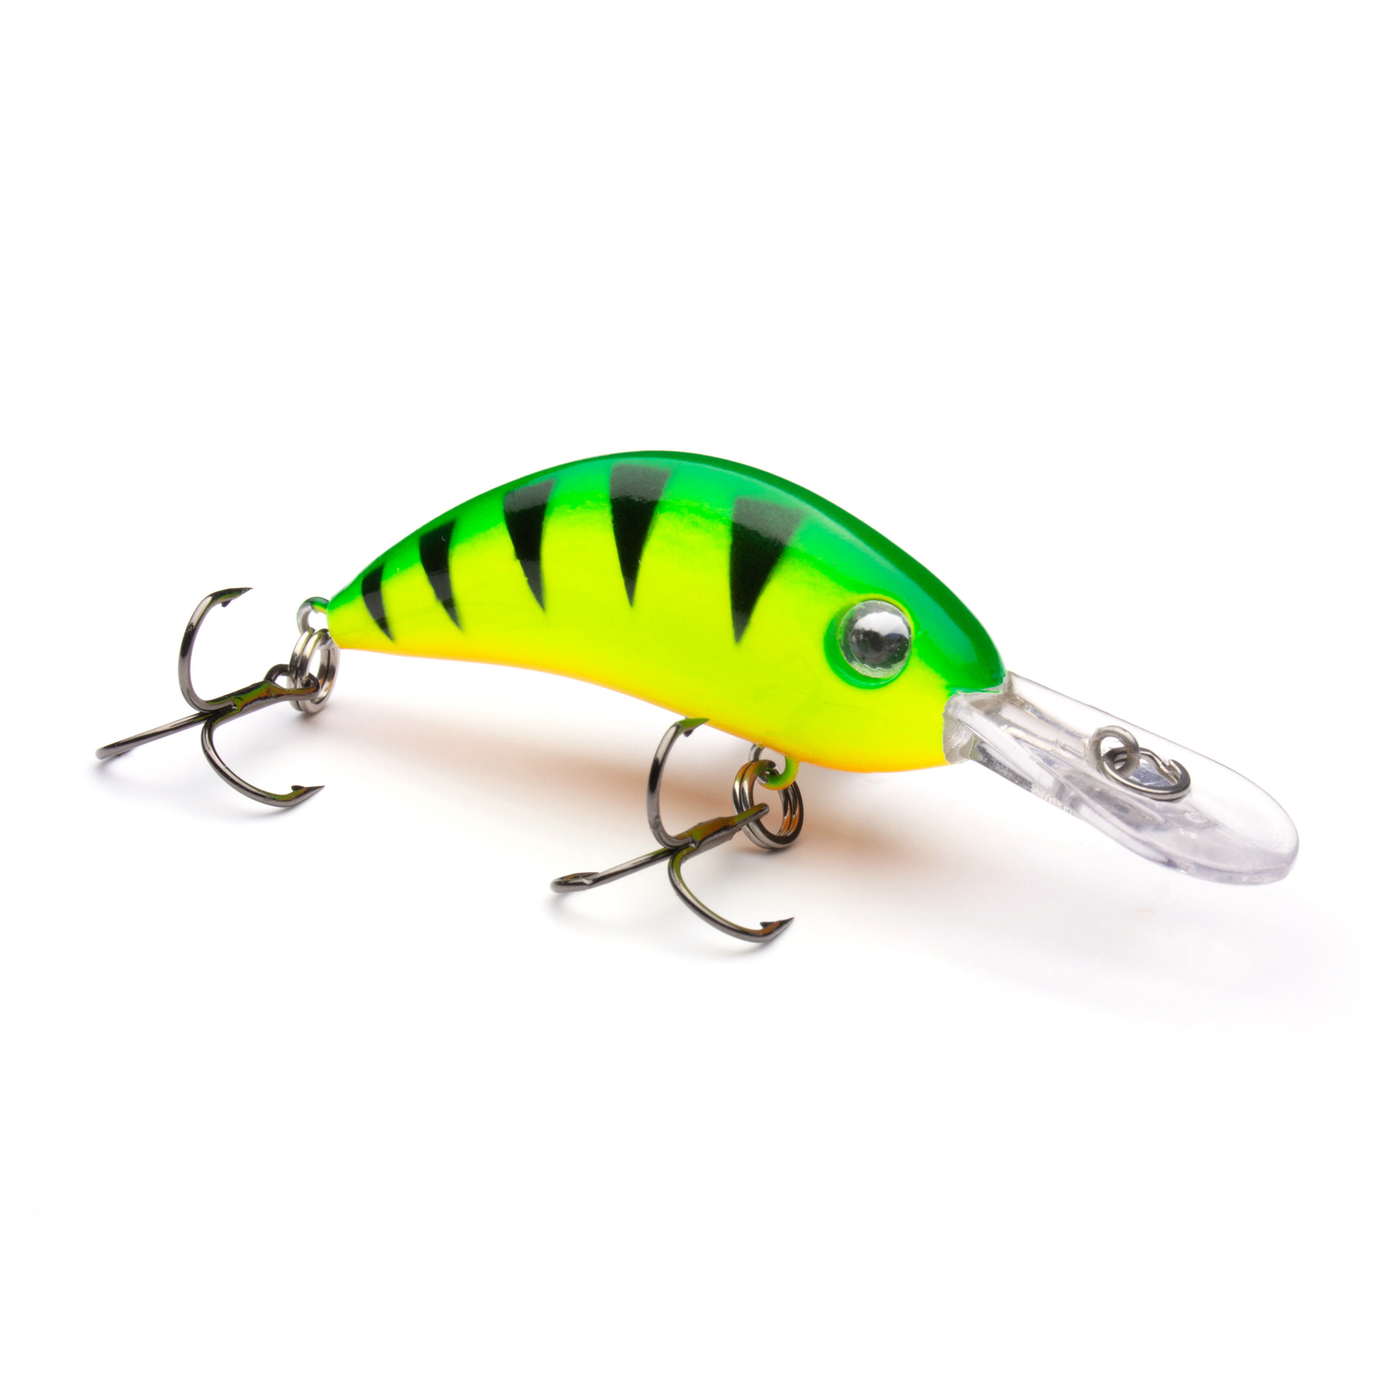 Phenomenon Crankbait